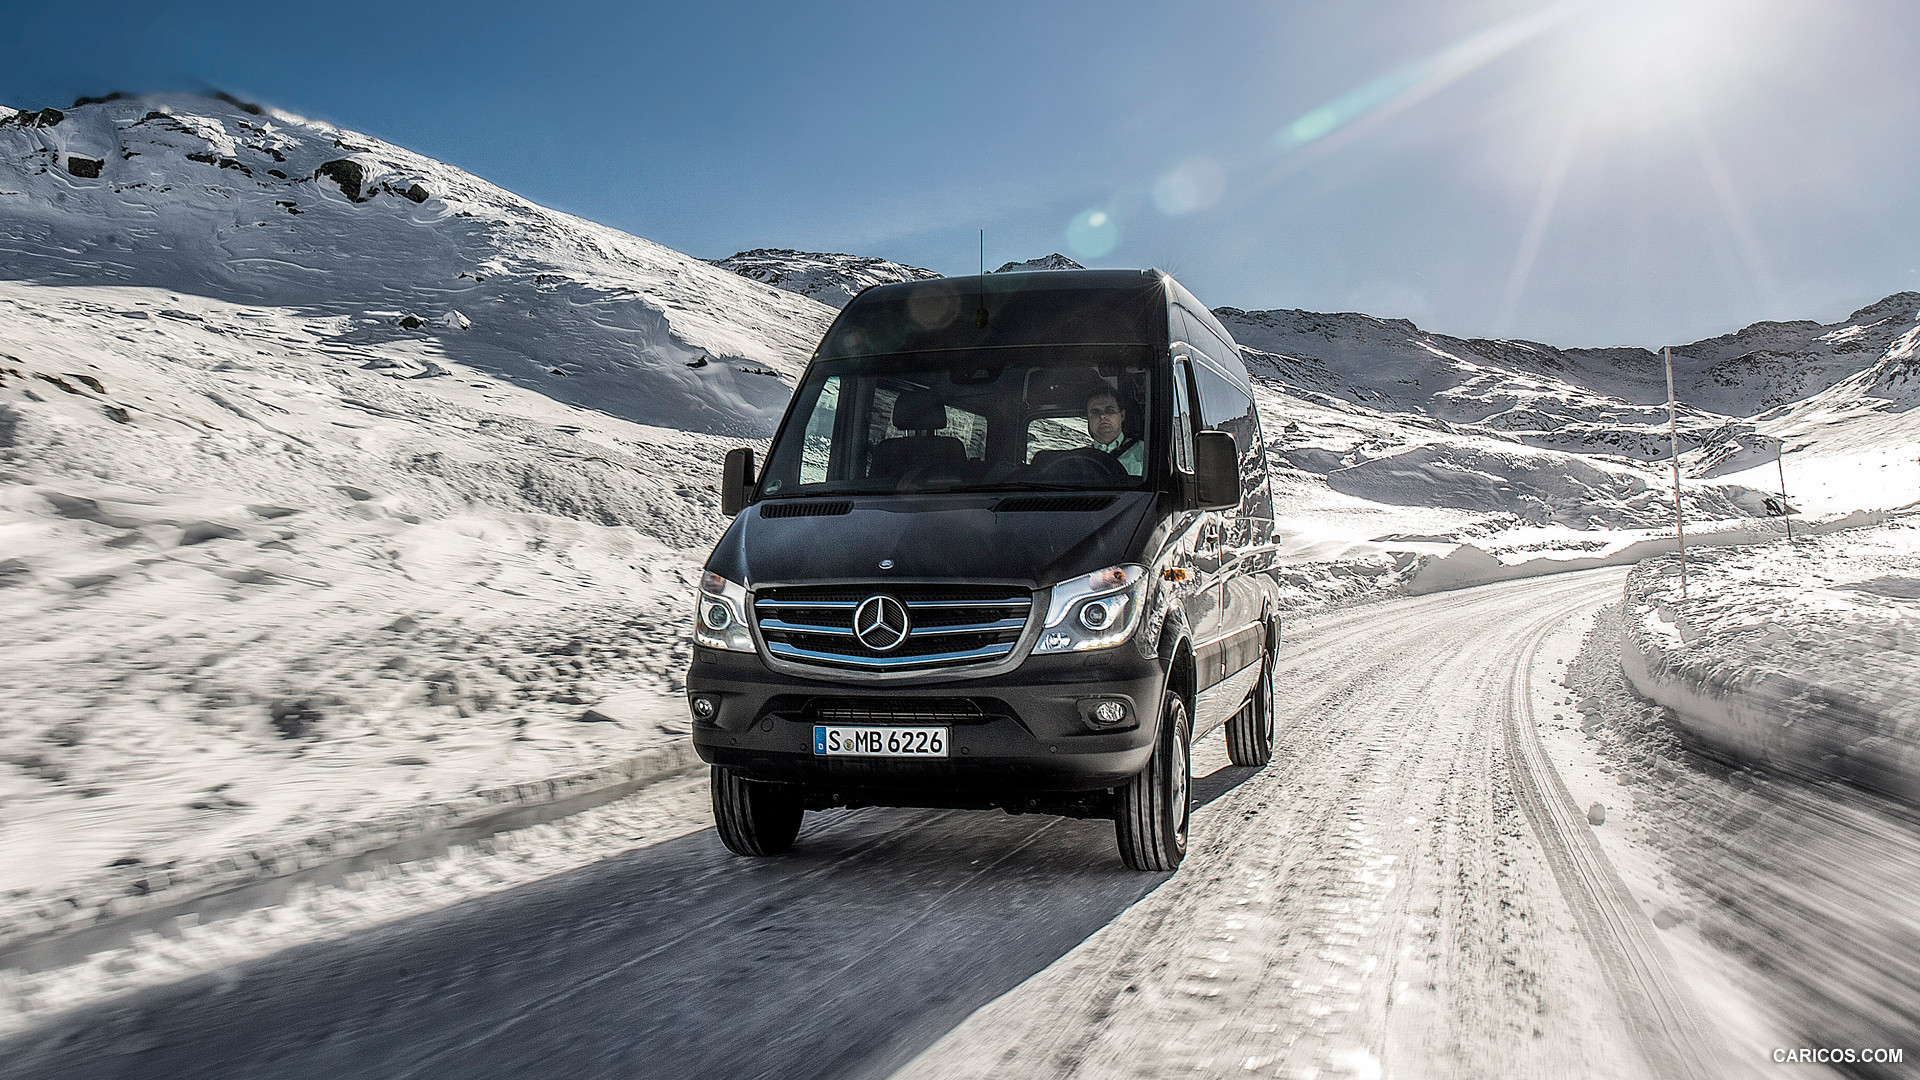 2015_mercedes-benz_sprinter_4x4_3_1920x1080